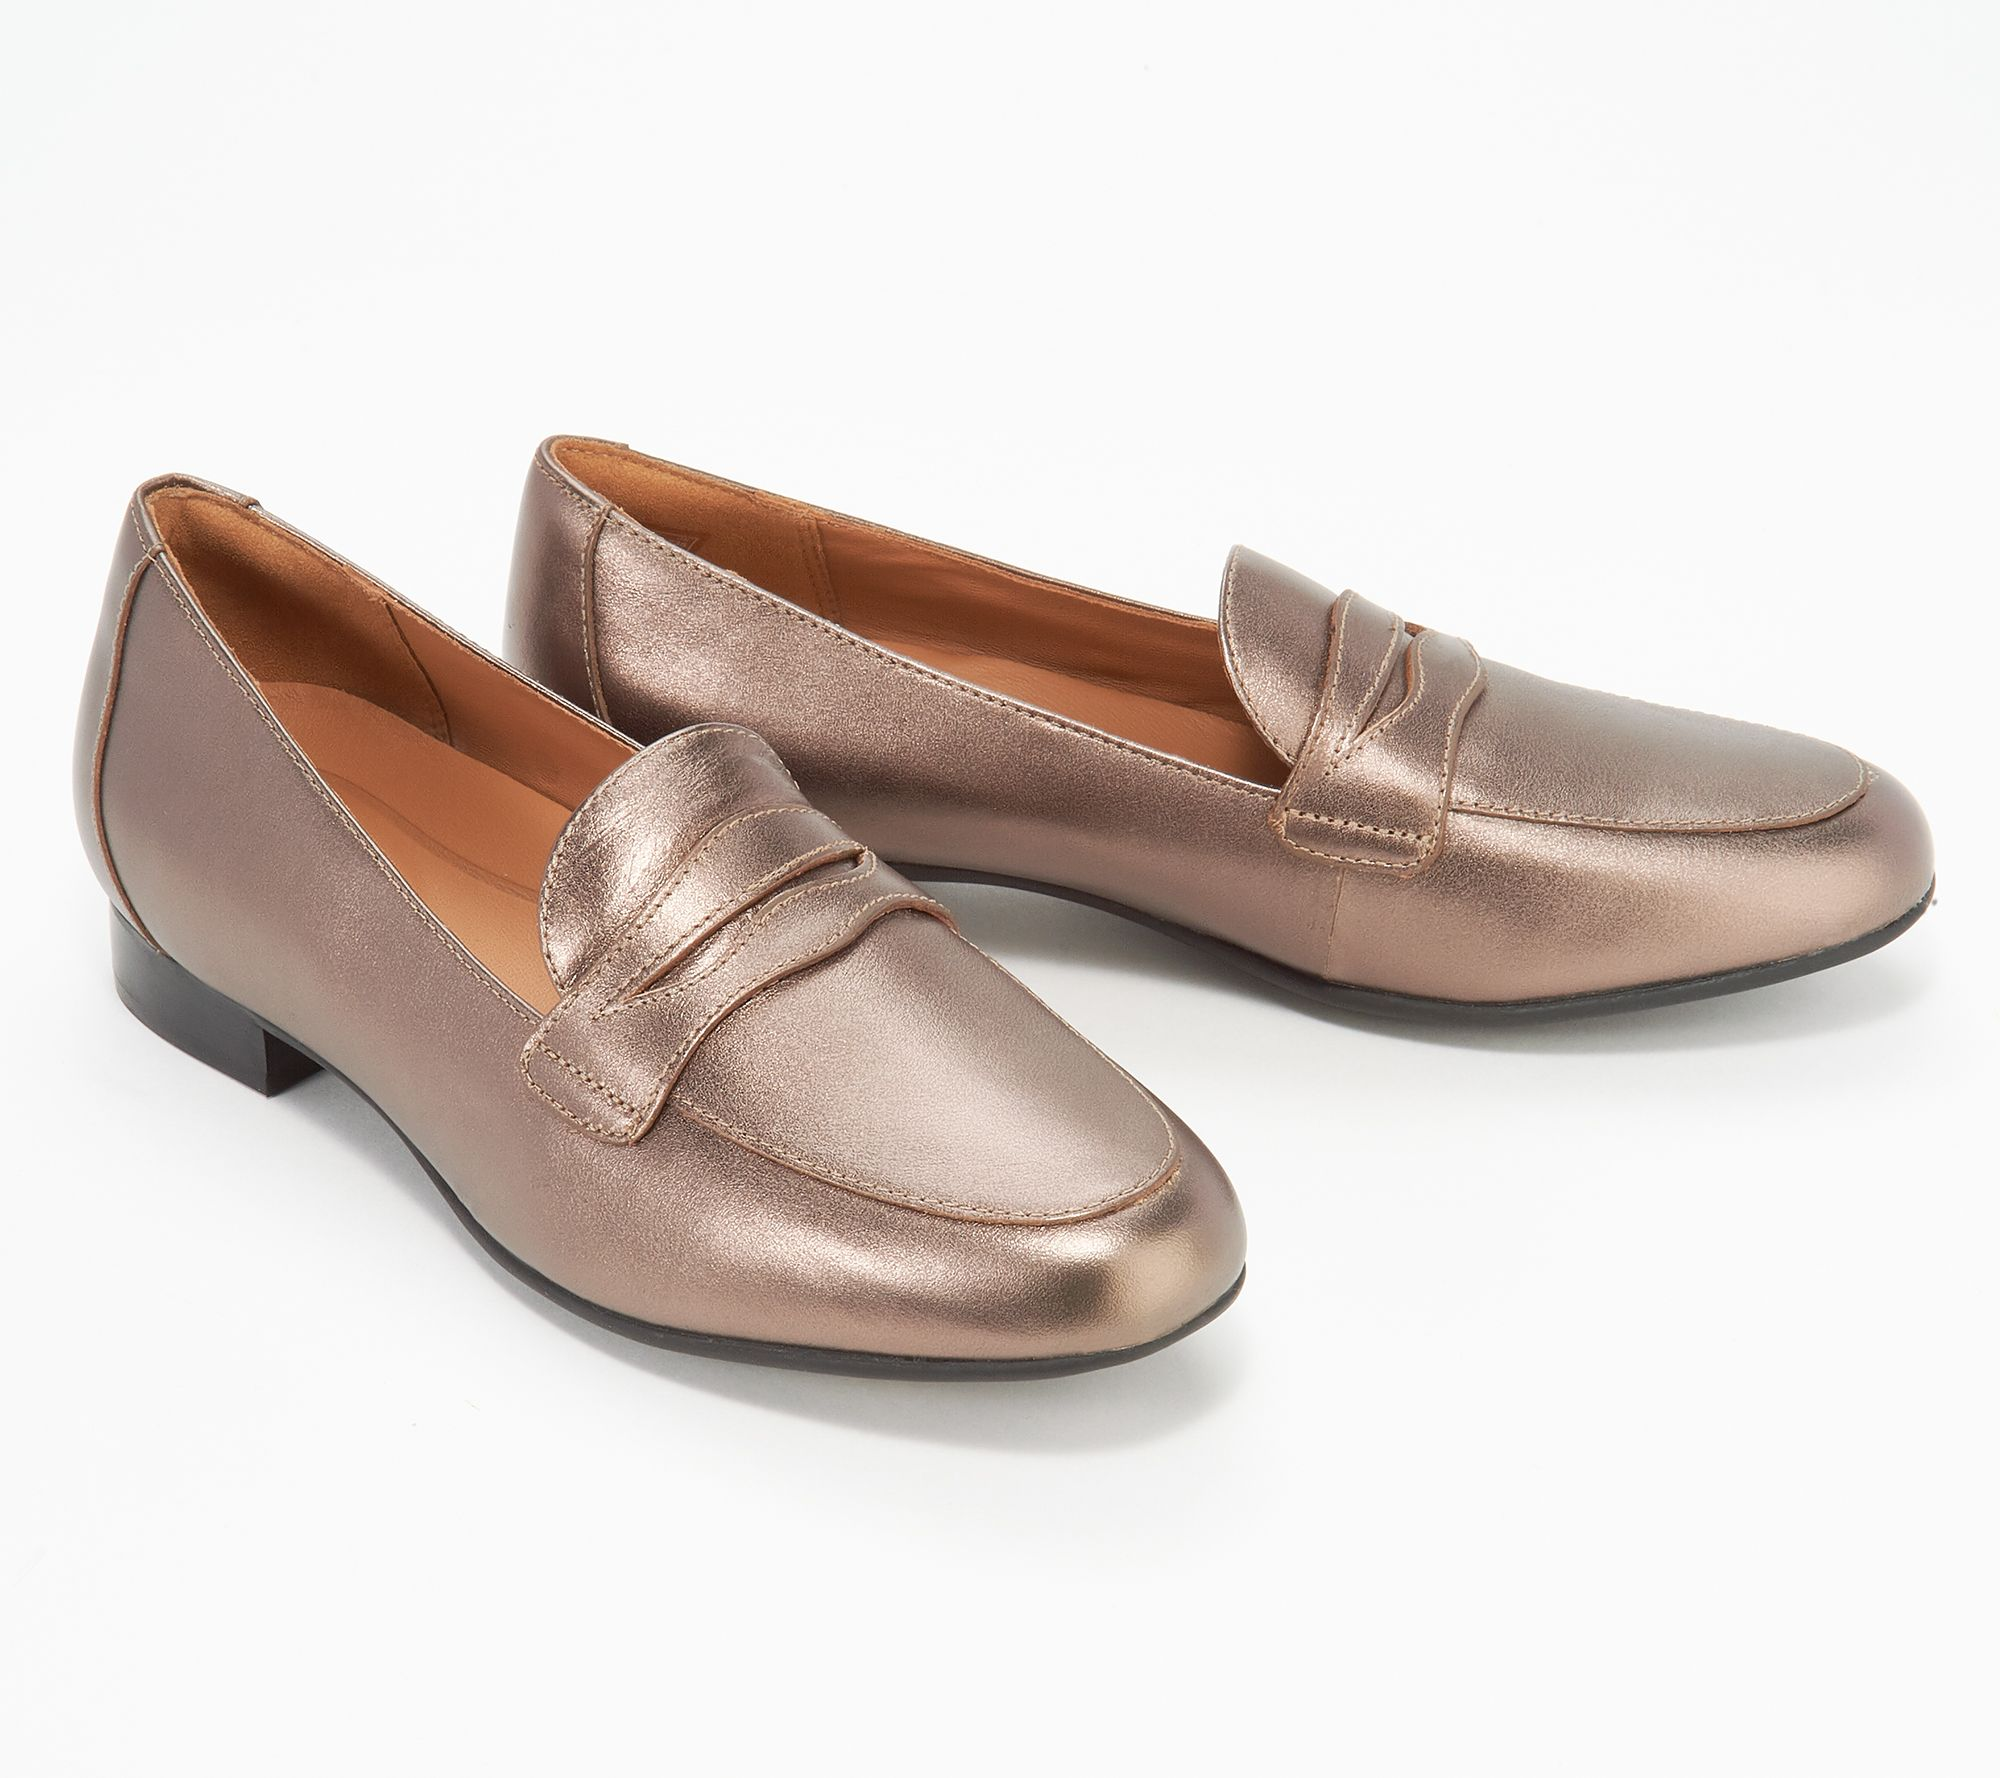 54f2931435f Clarks Unstructured Slip-On Penny Loafers - Un Blush Go - Page 1 — QVC.com